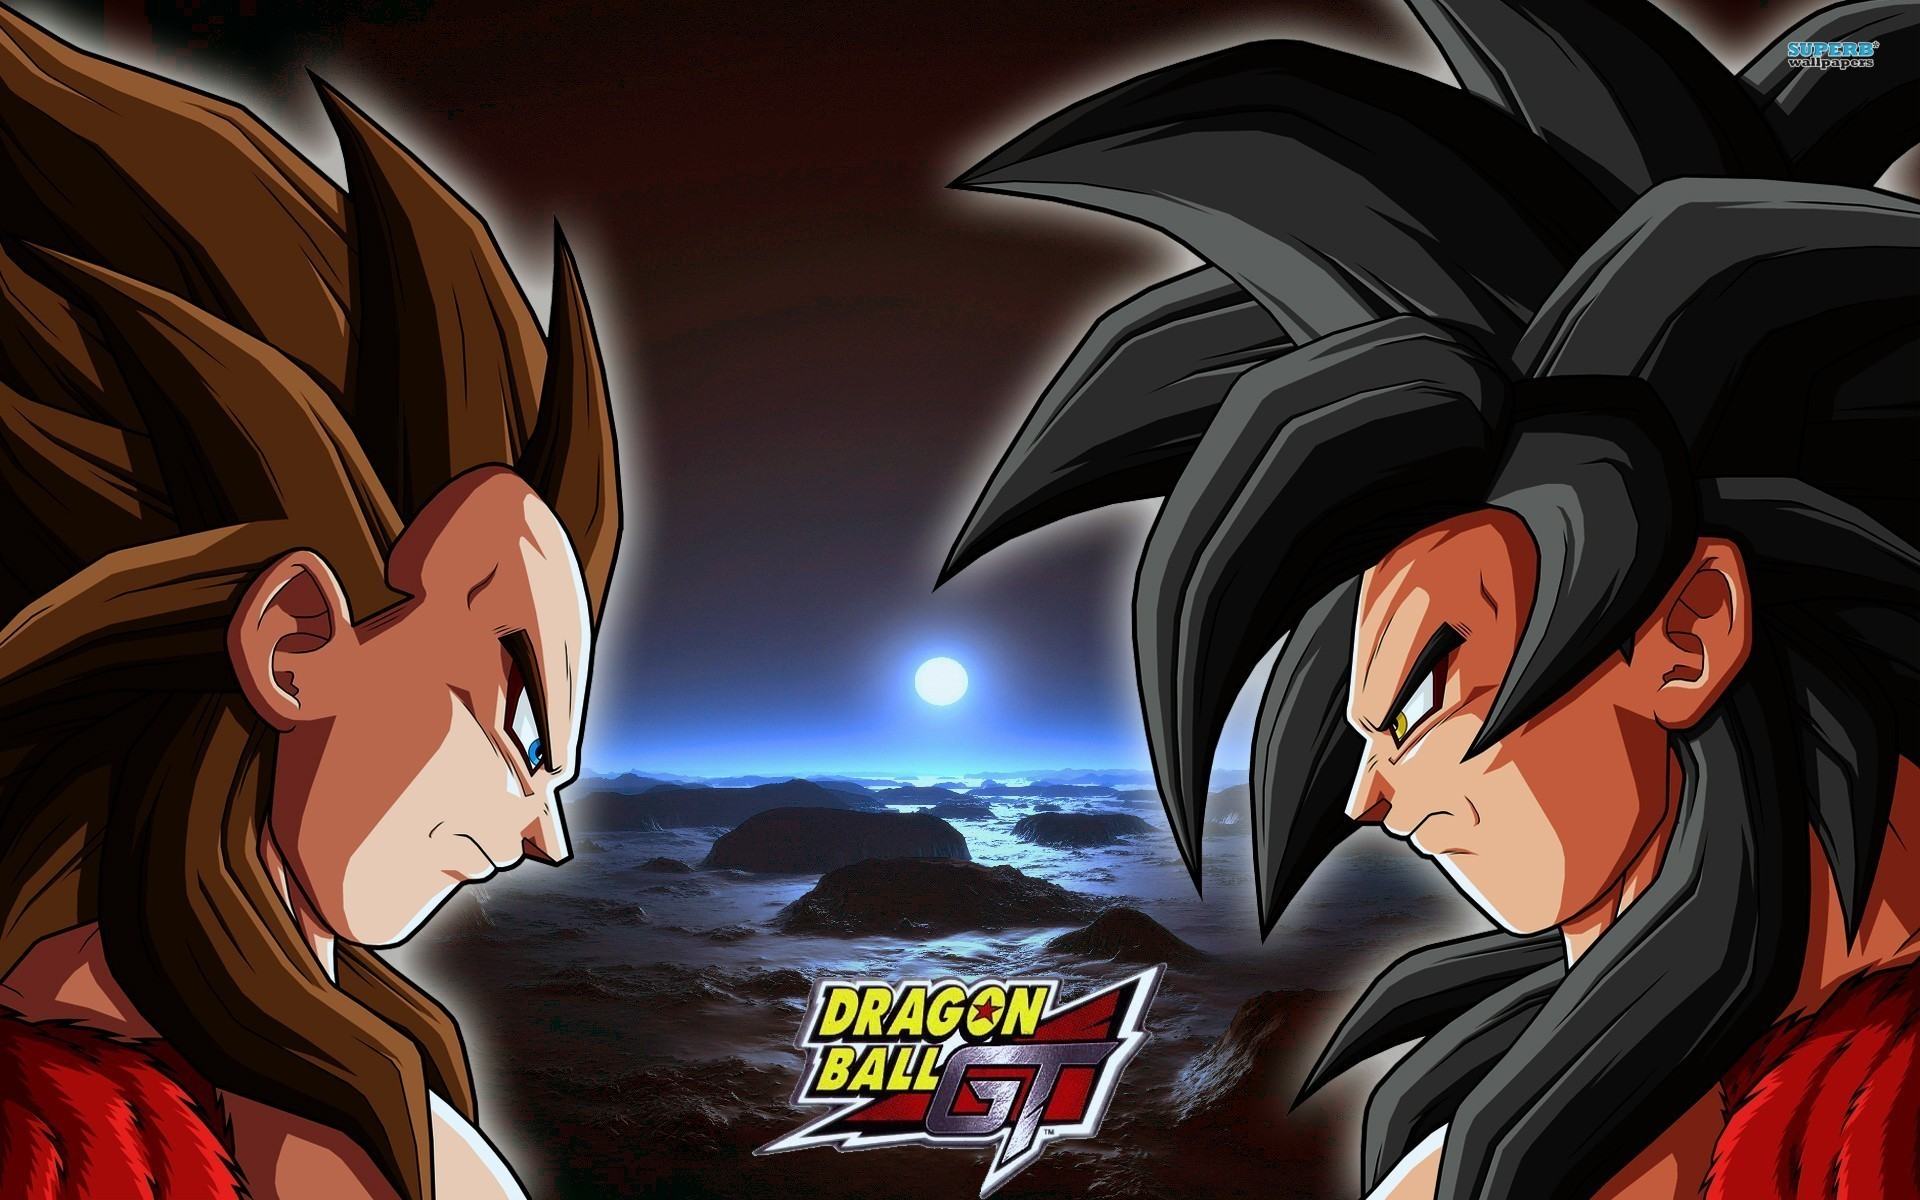 Super saiyan 4 goku and vegeta wallpapers 60 images - Dragon ball gt goku wallpaper ...